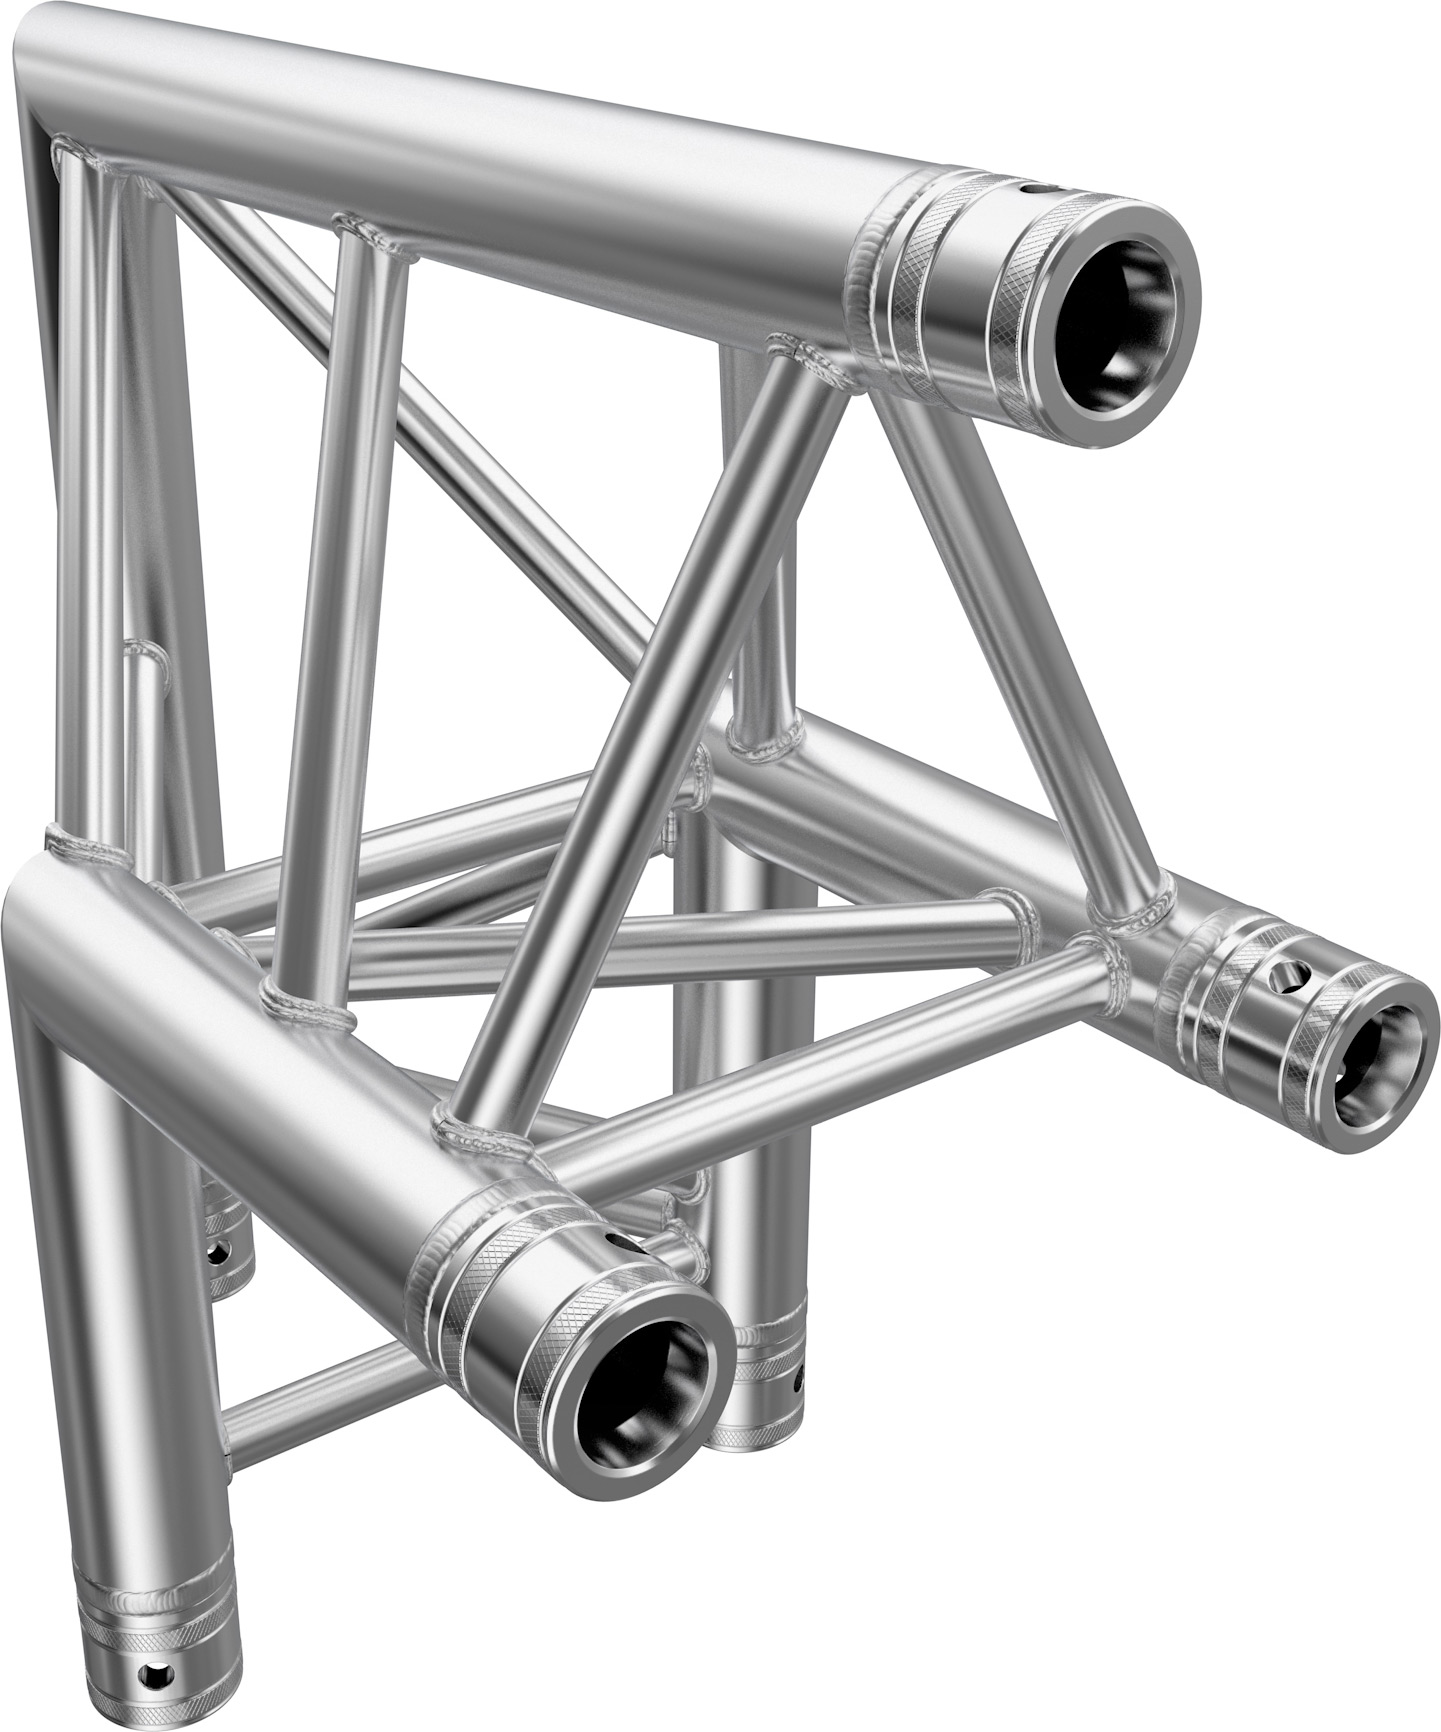 Global Truss F33 2-Weg Ecke C24 90°